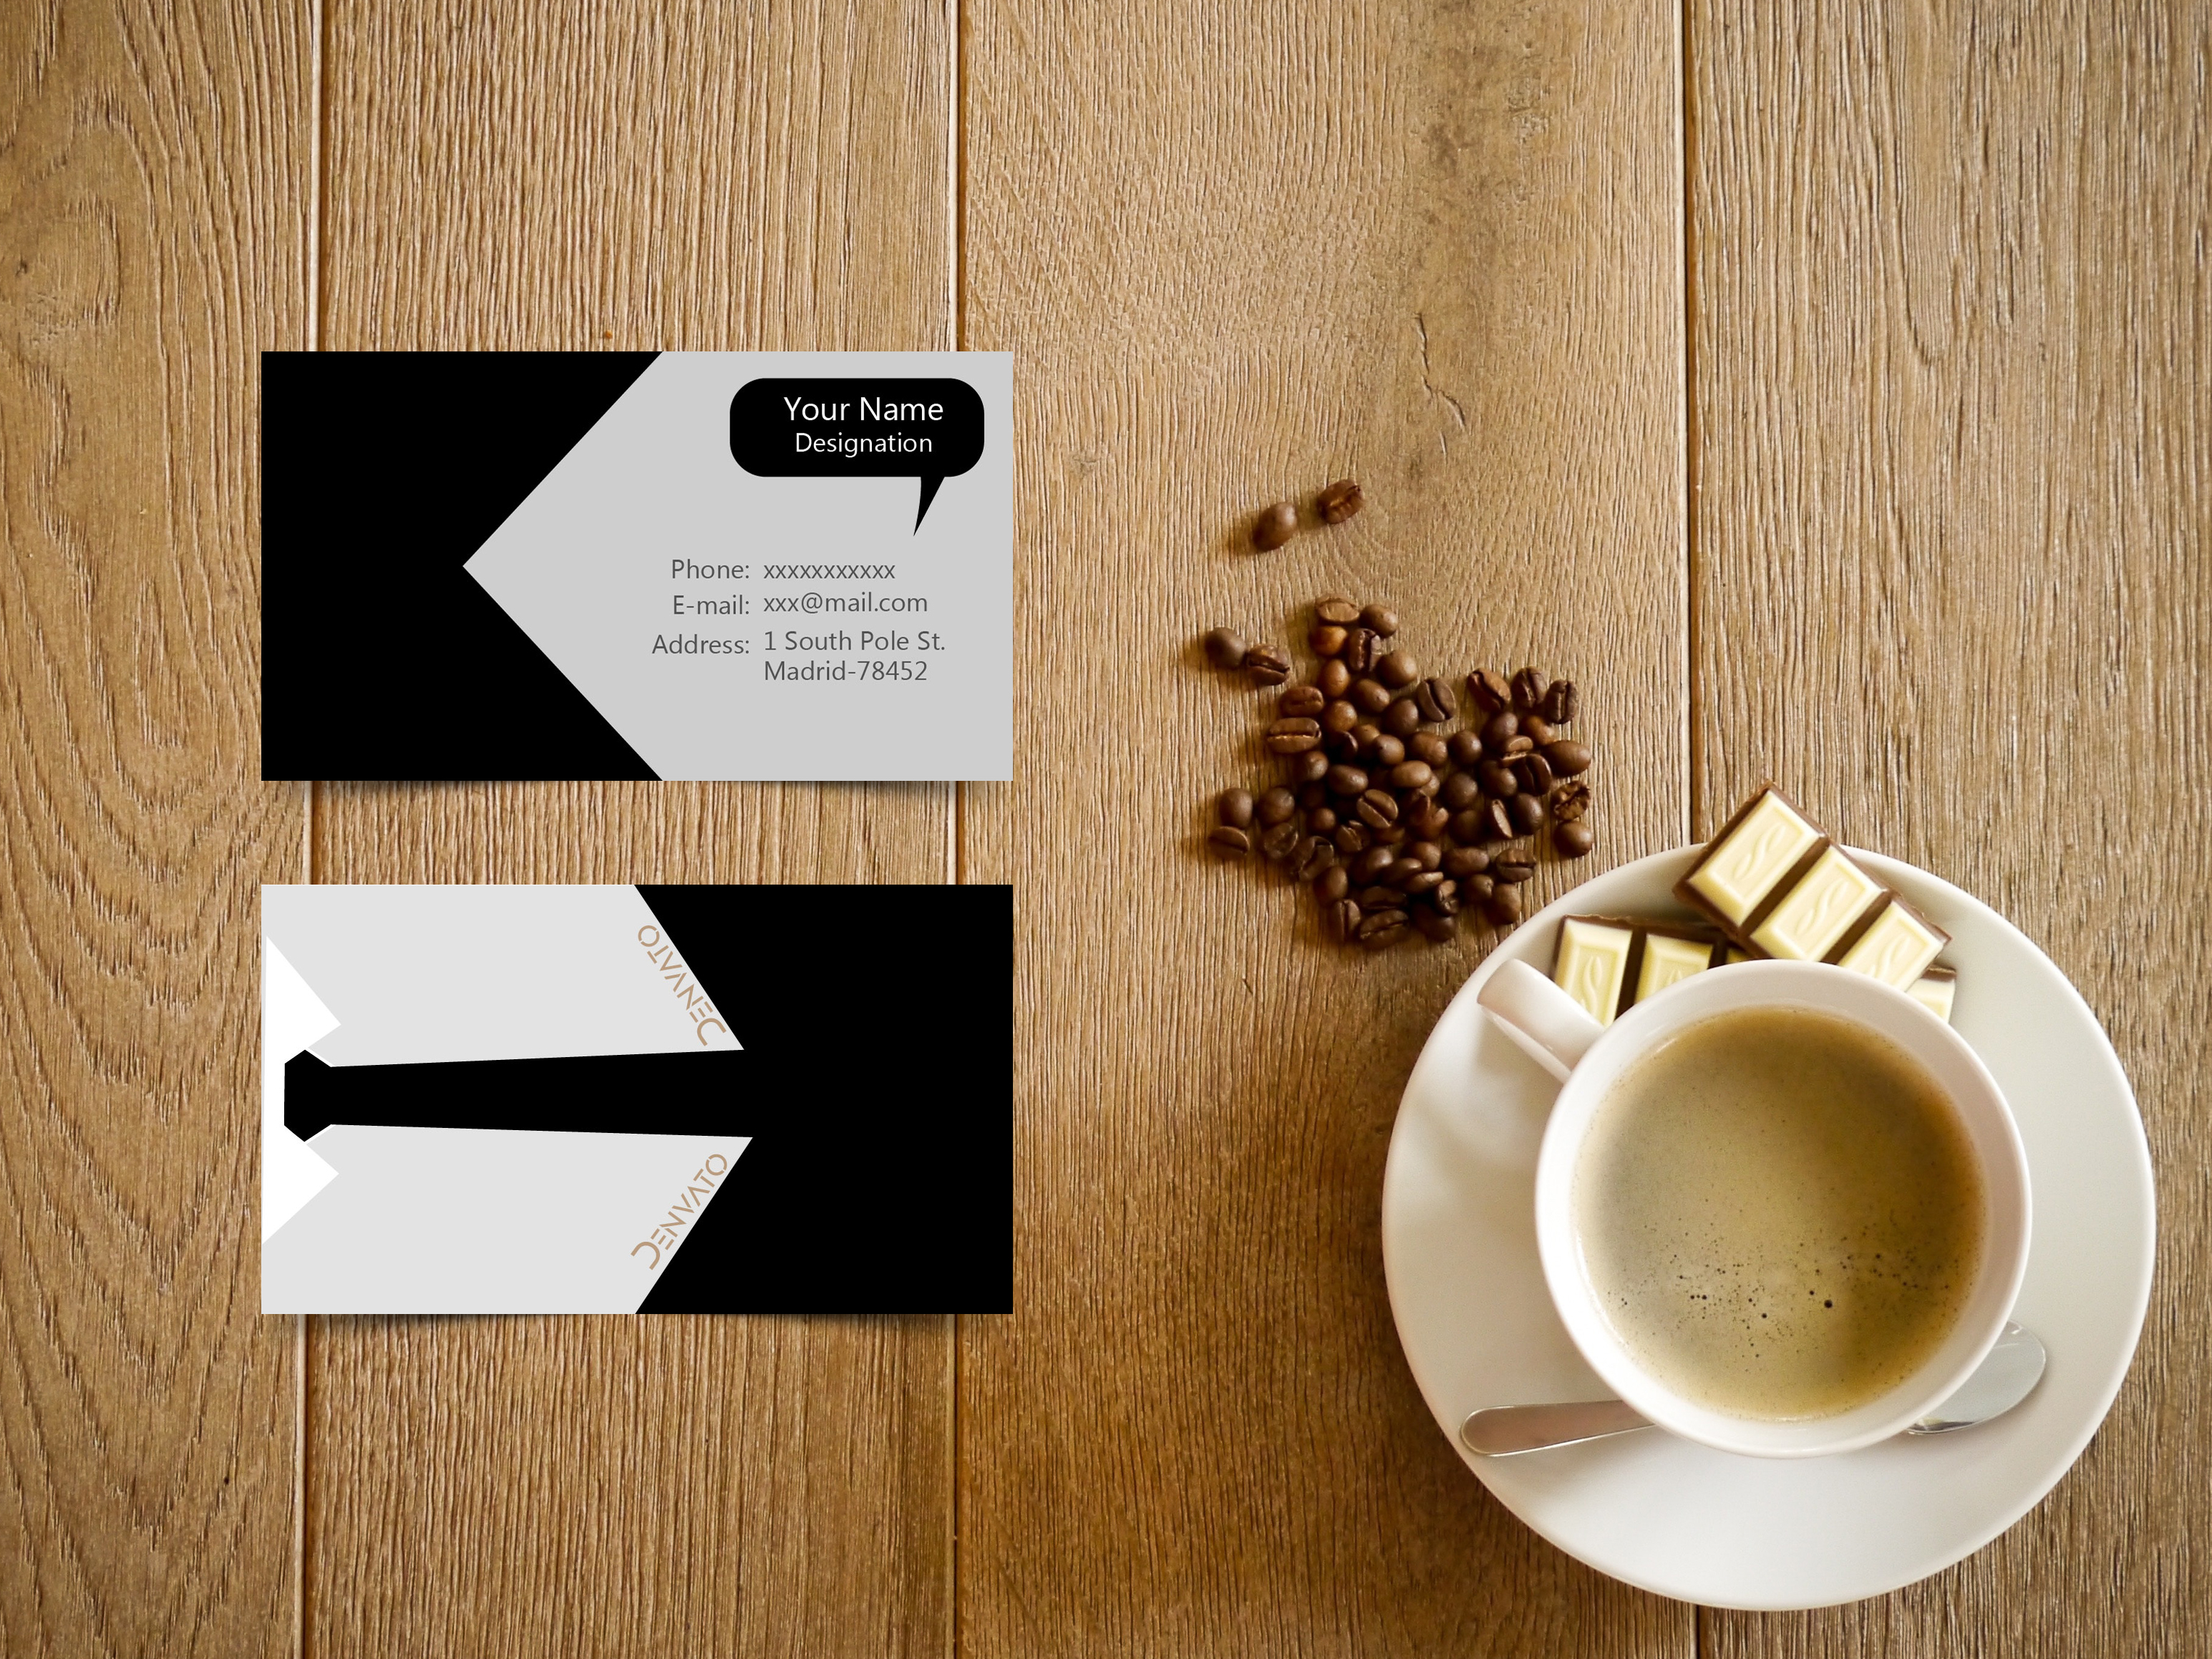 I'l Design Professional Corporate and Individual Business Cards for your good office